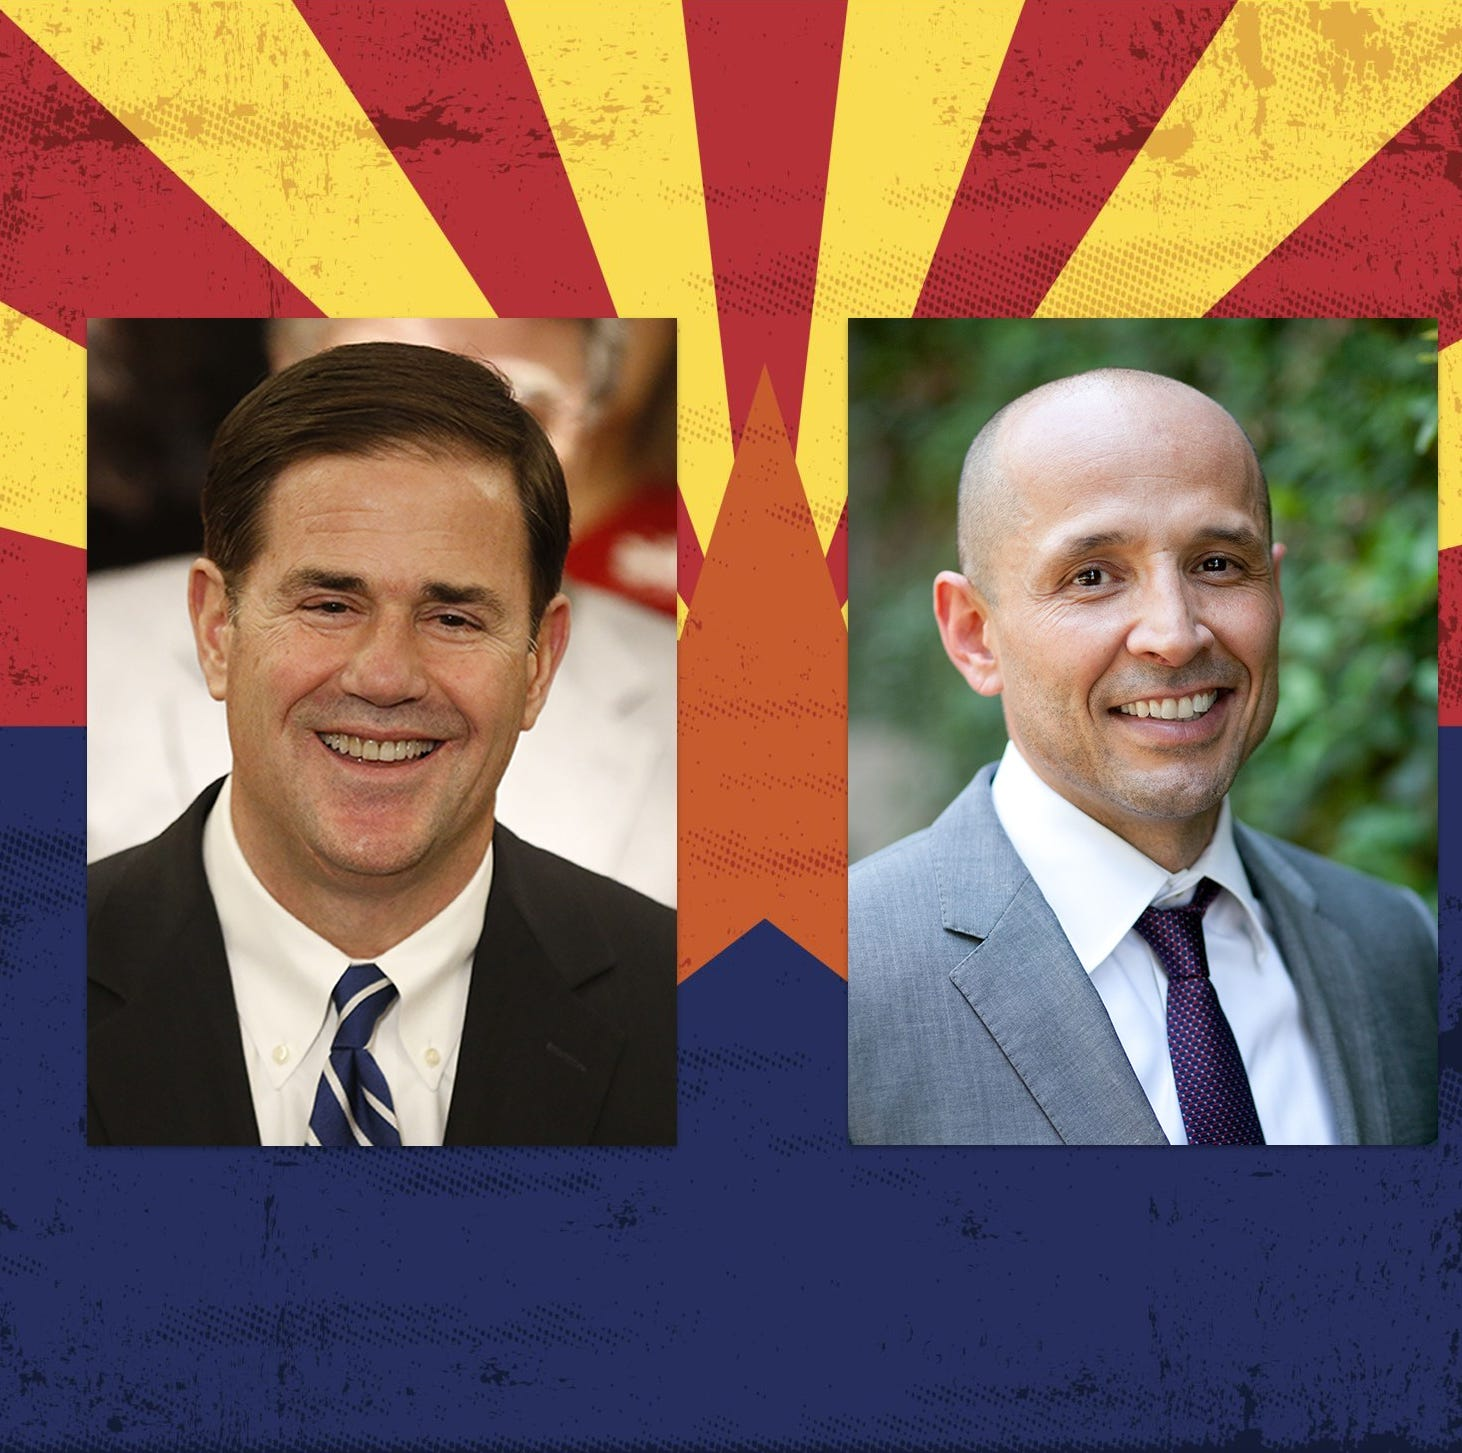 Watch LIVE at  5 p.m.: Candidates for Arizona governor face off in first public debate